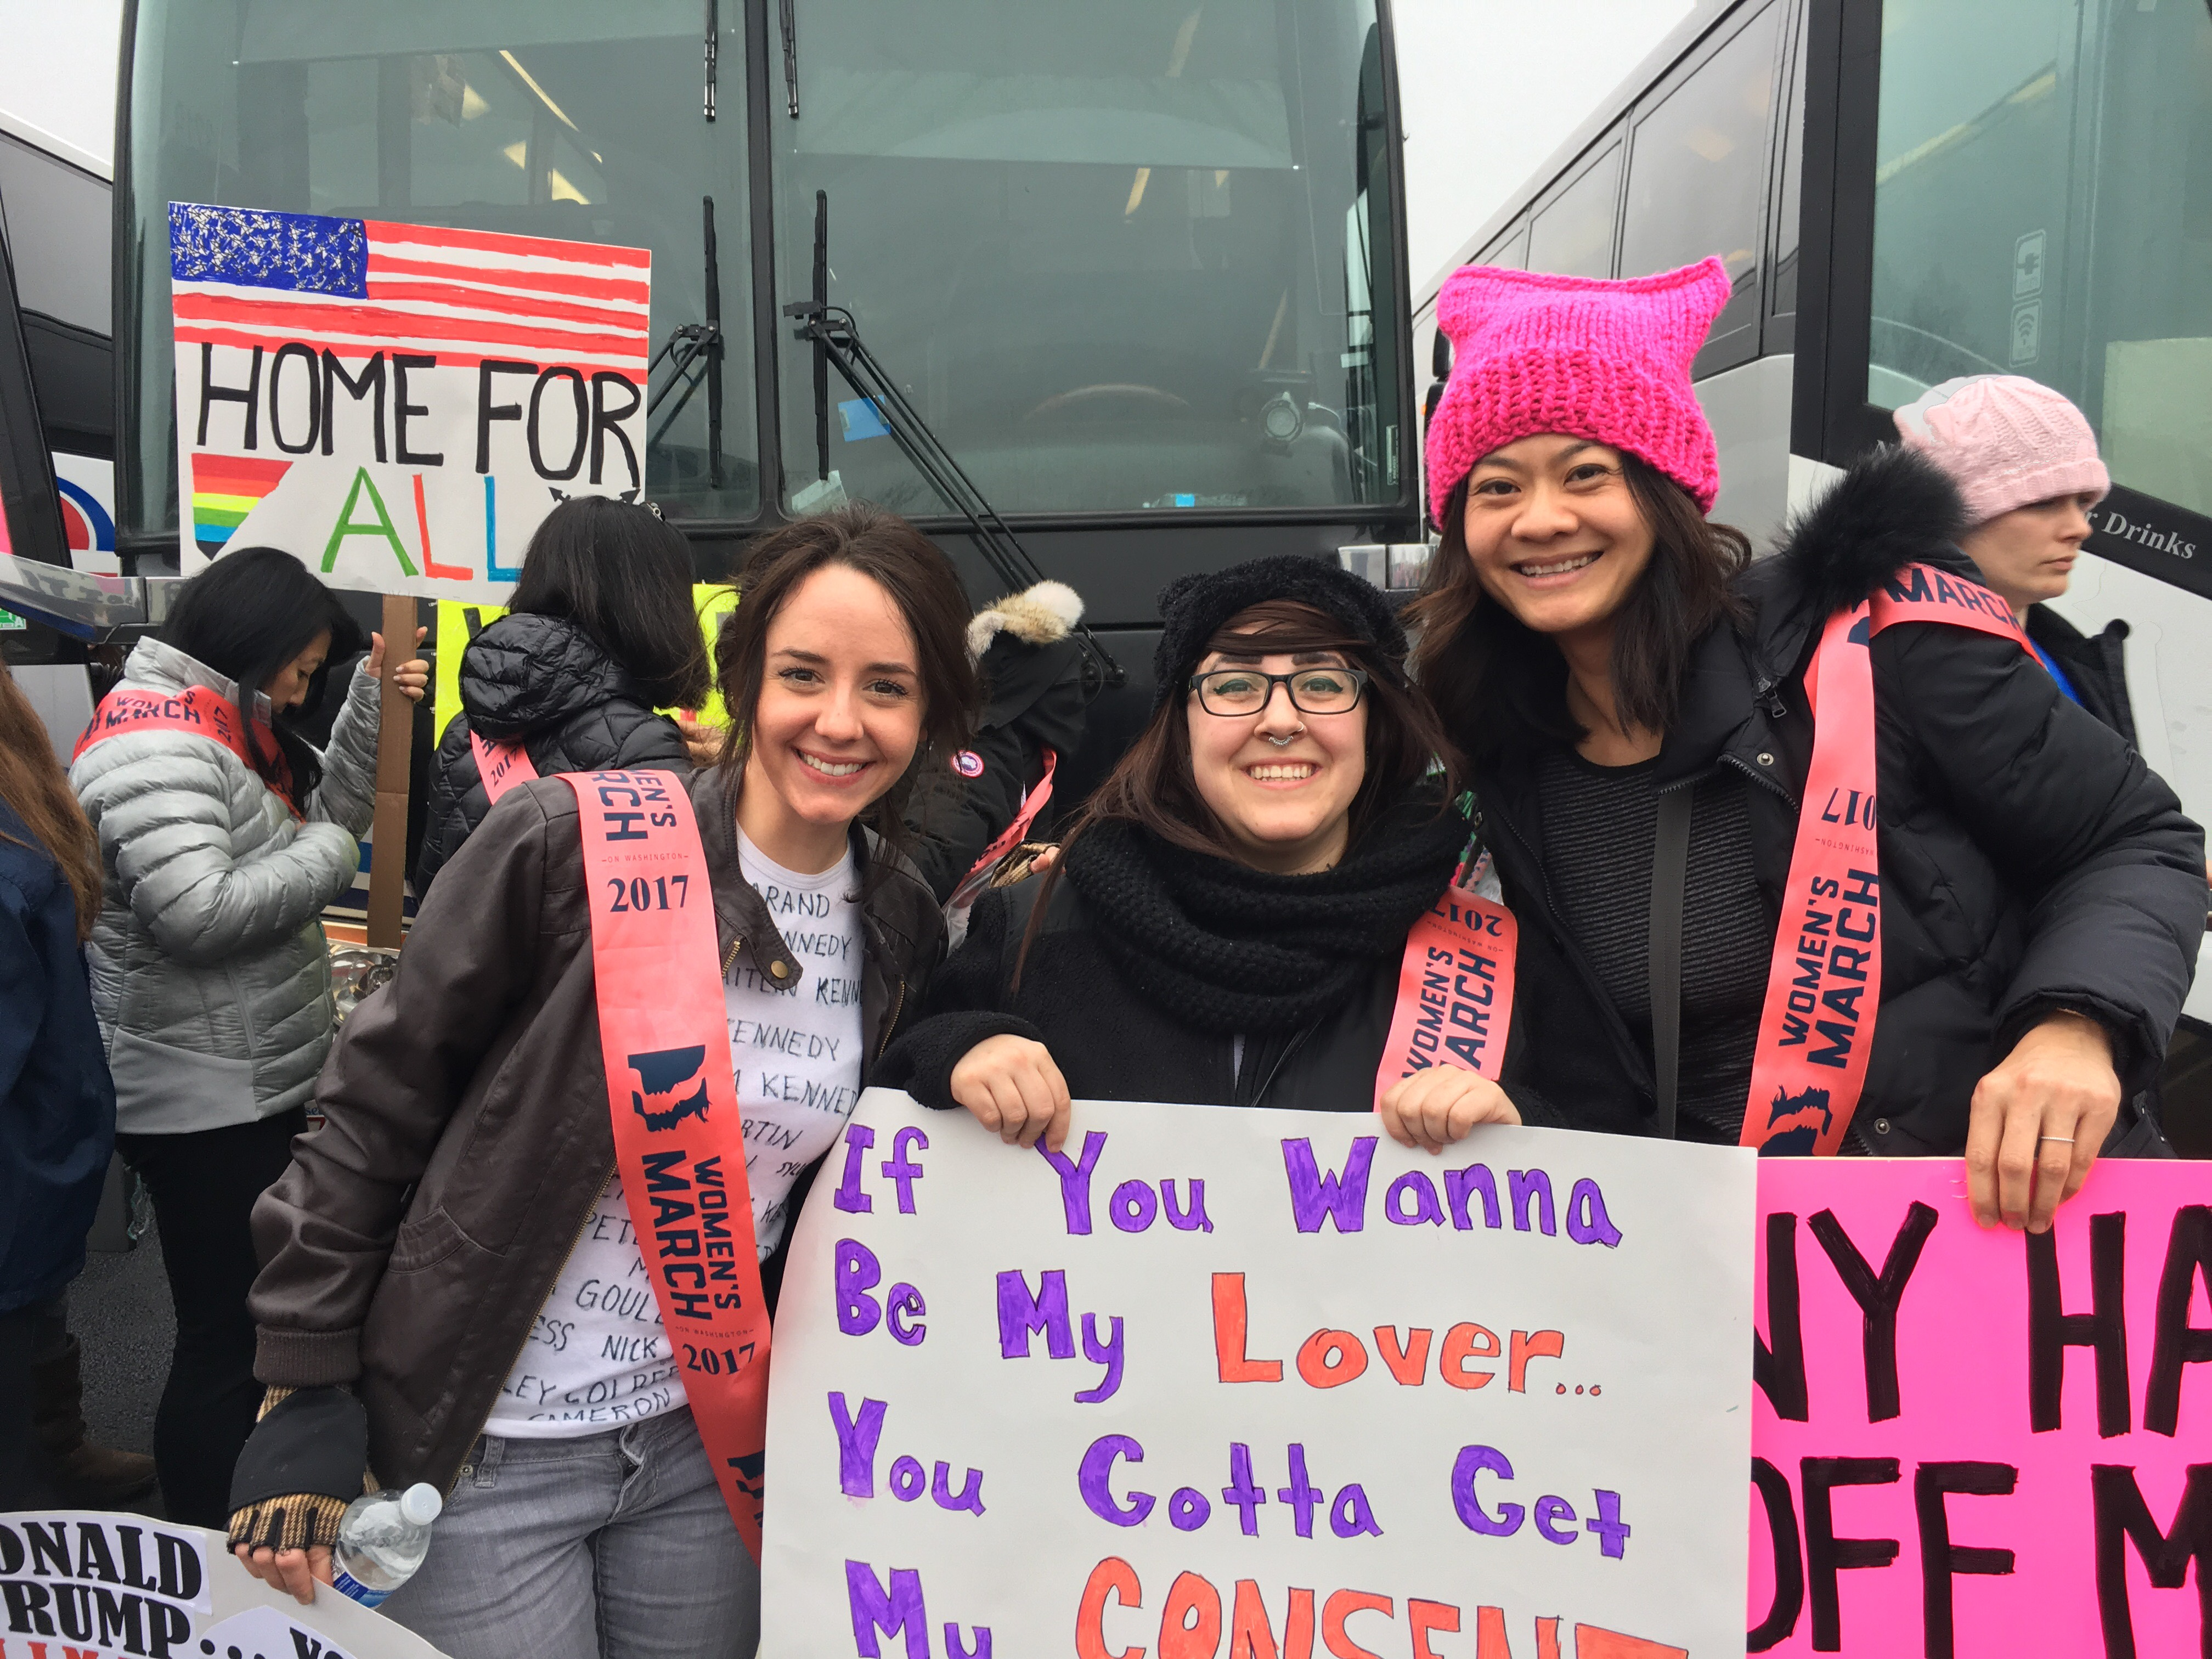 women-s-march-on-washington-2017-sashes.-signs-of-women-expressing-themselves-with-smiles-on-their-faces-.jpg